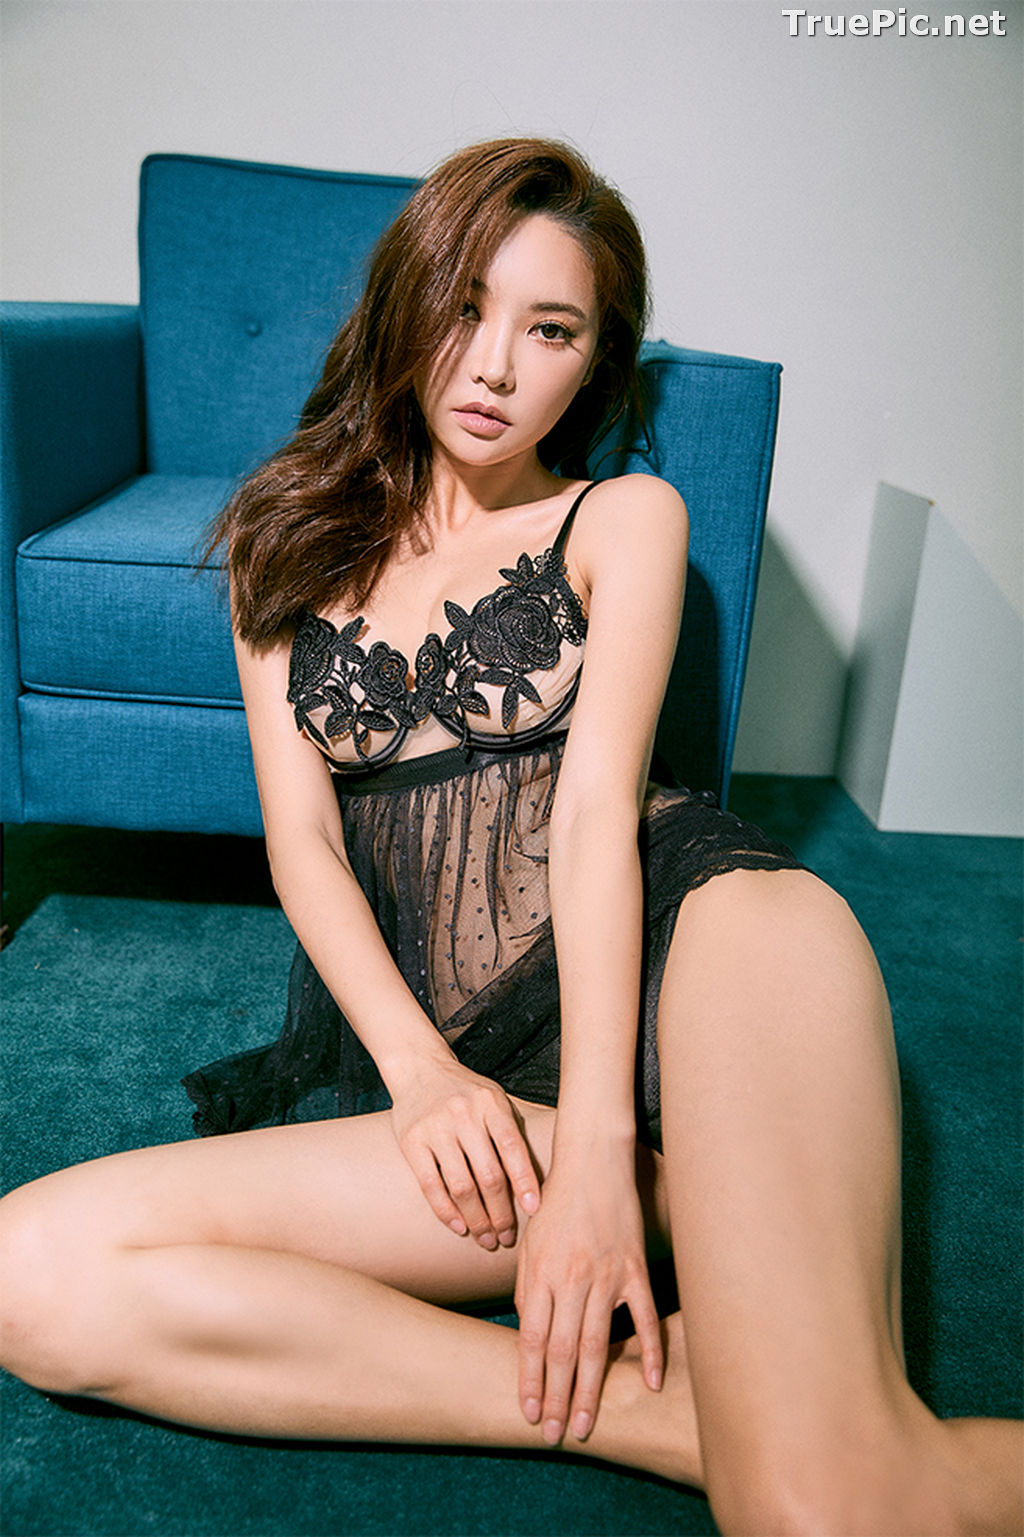 Image Korean Fashion Model – Park Soo Yeon (박수연) – Come On Vincent Lingerie #1 - TruePic.net - Picture-1